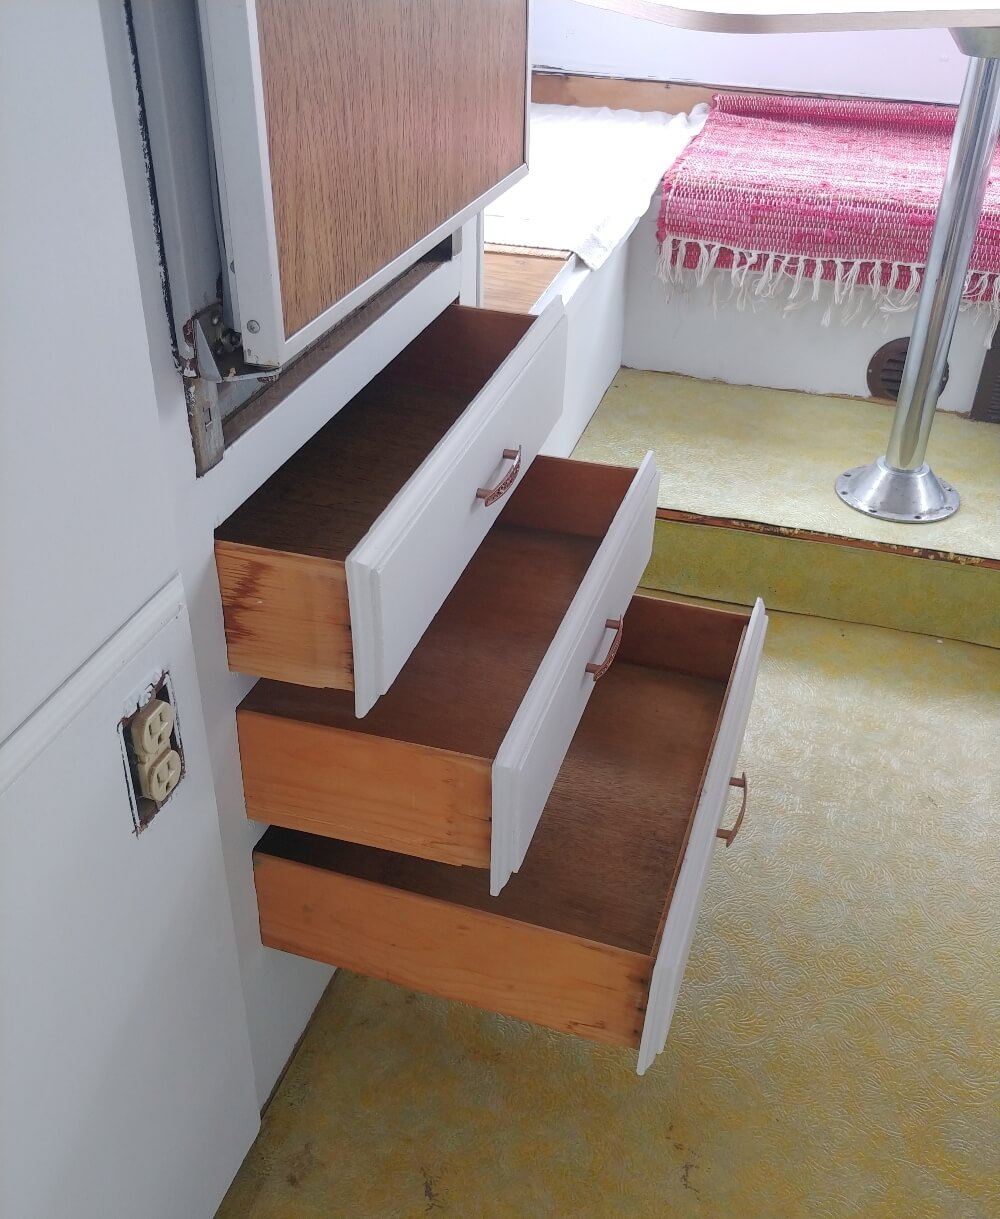 Vintage Motorhome Closets, Drawers, and Trim